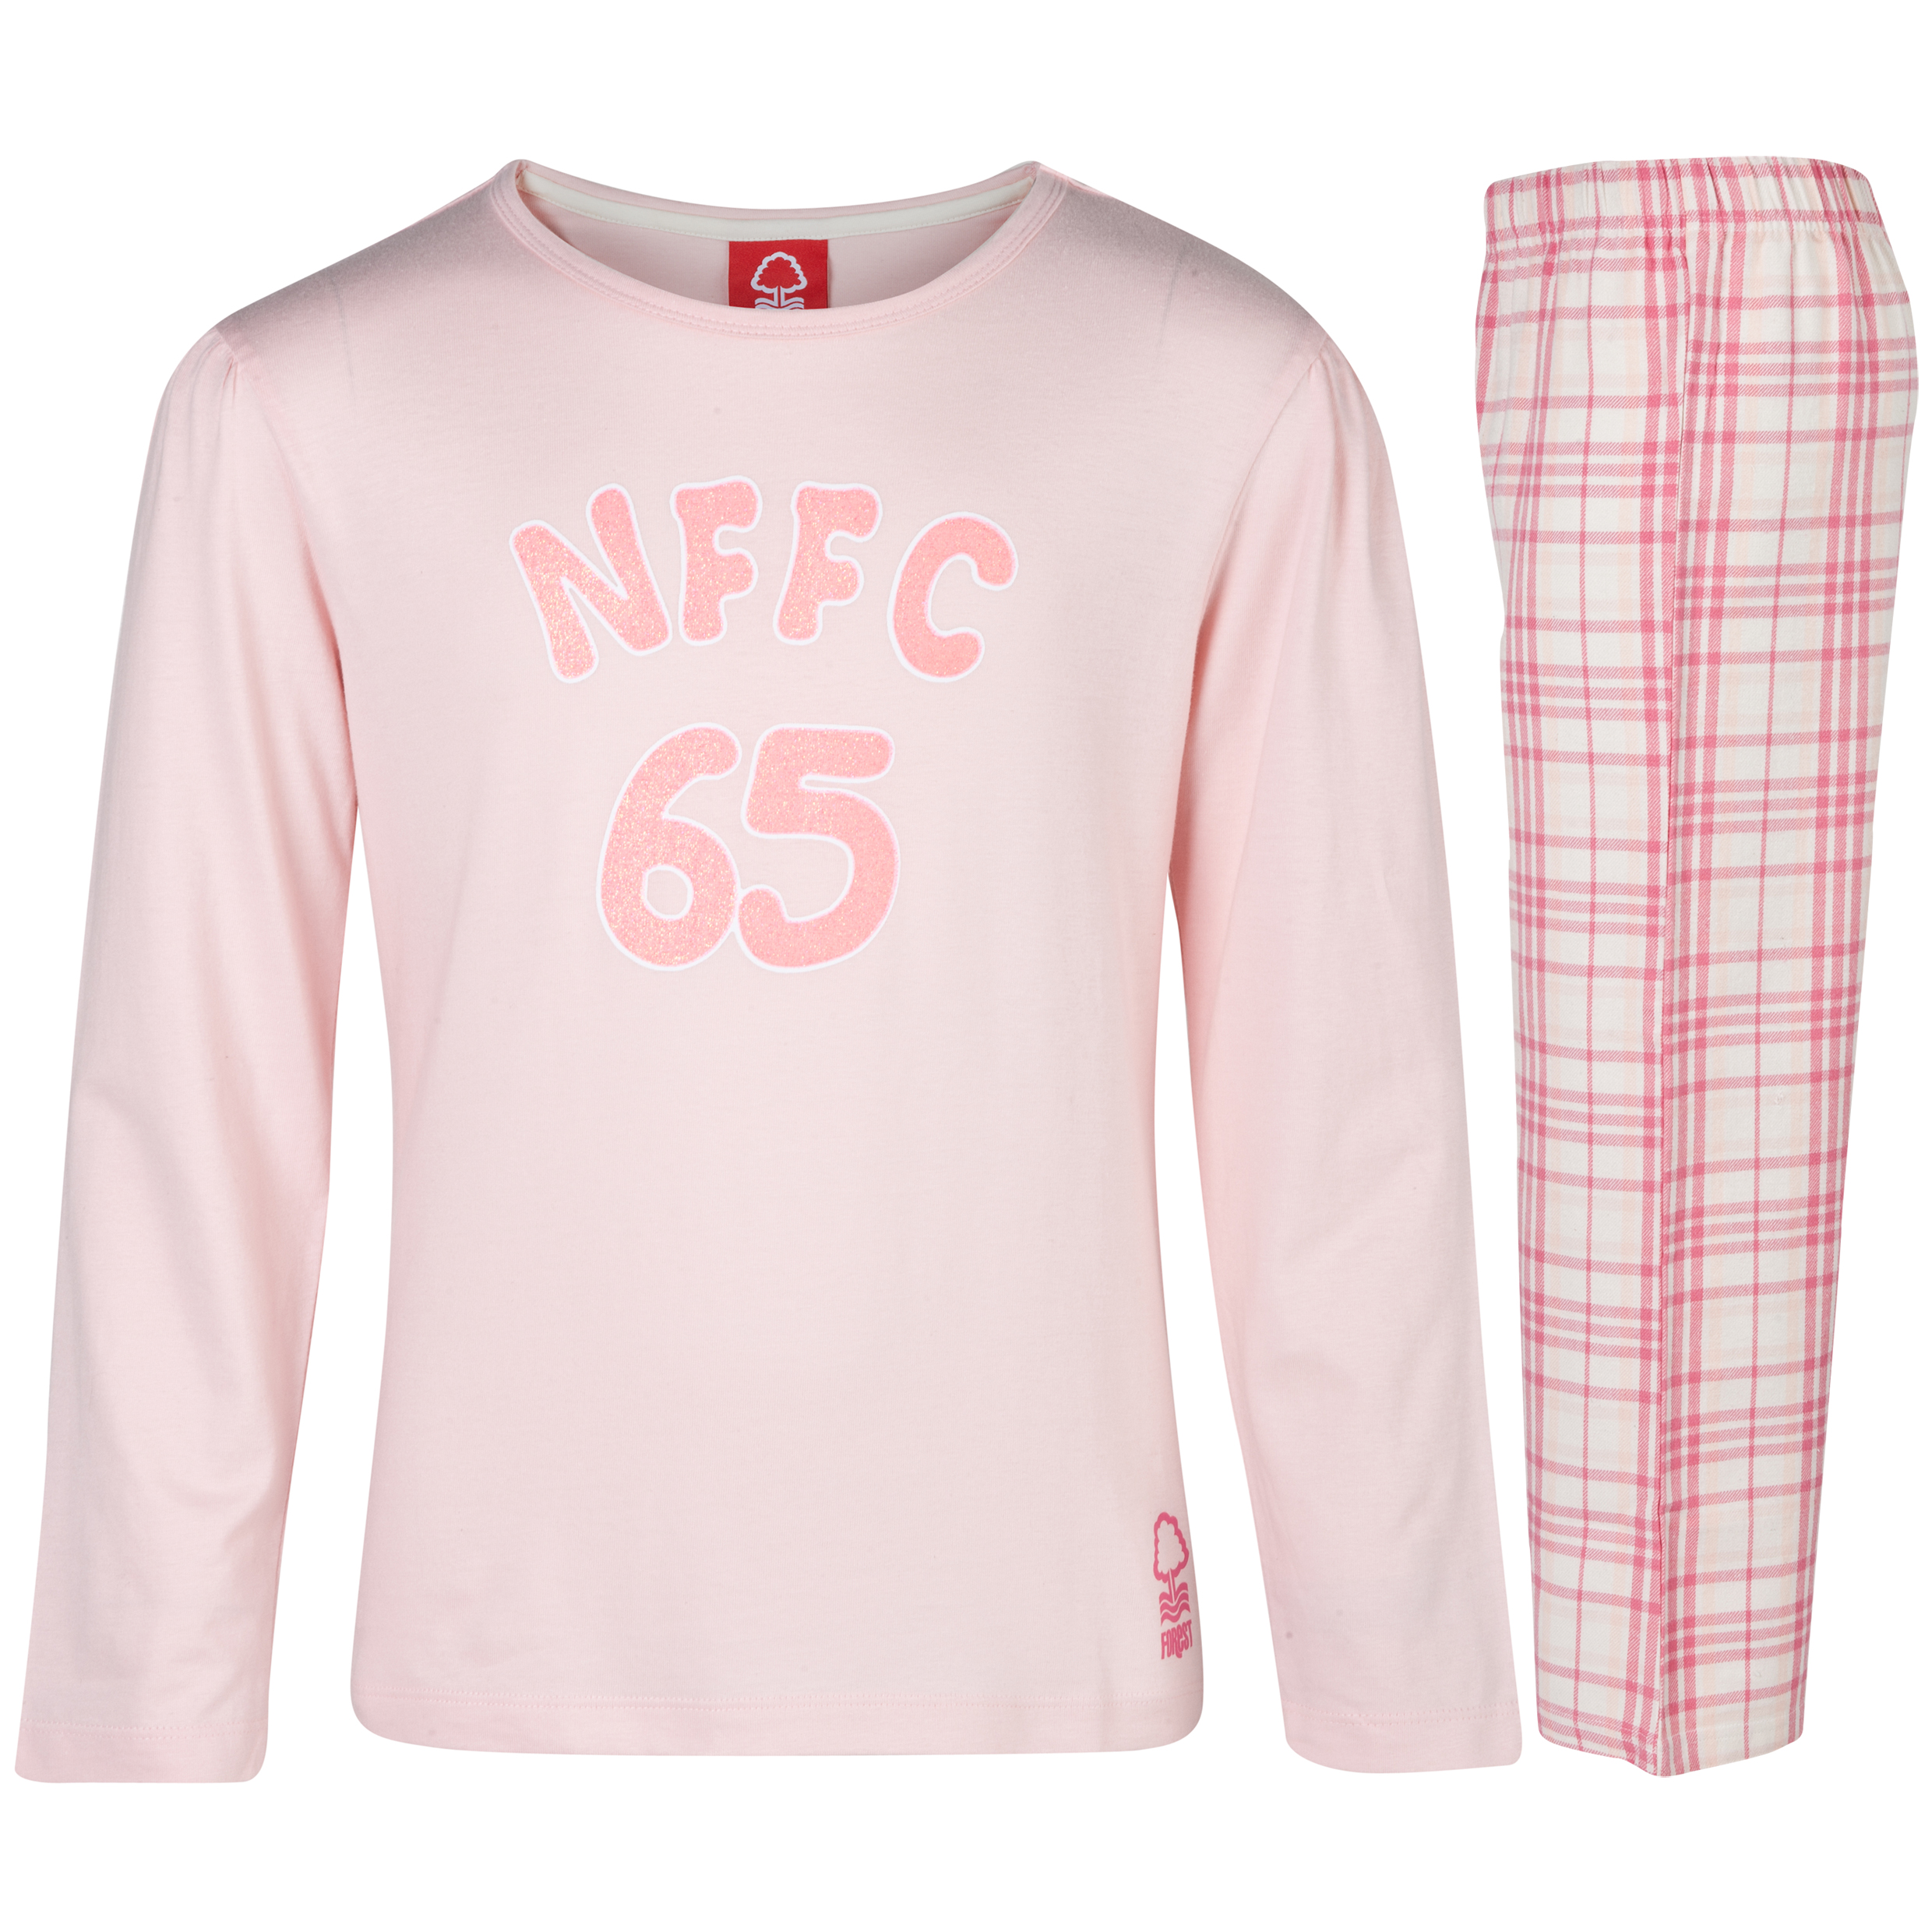 Nottingham Forest 65 Pyjamas Girls Pink